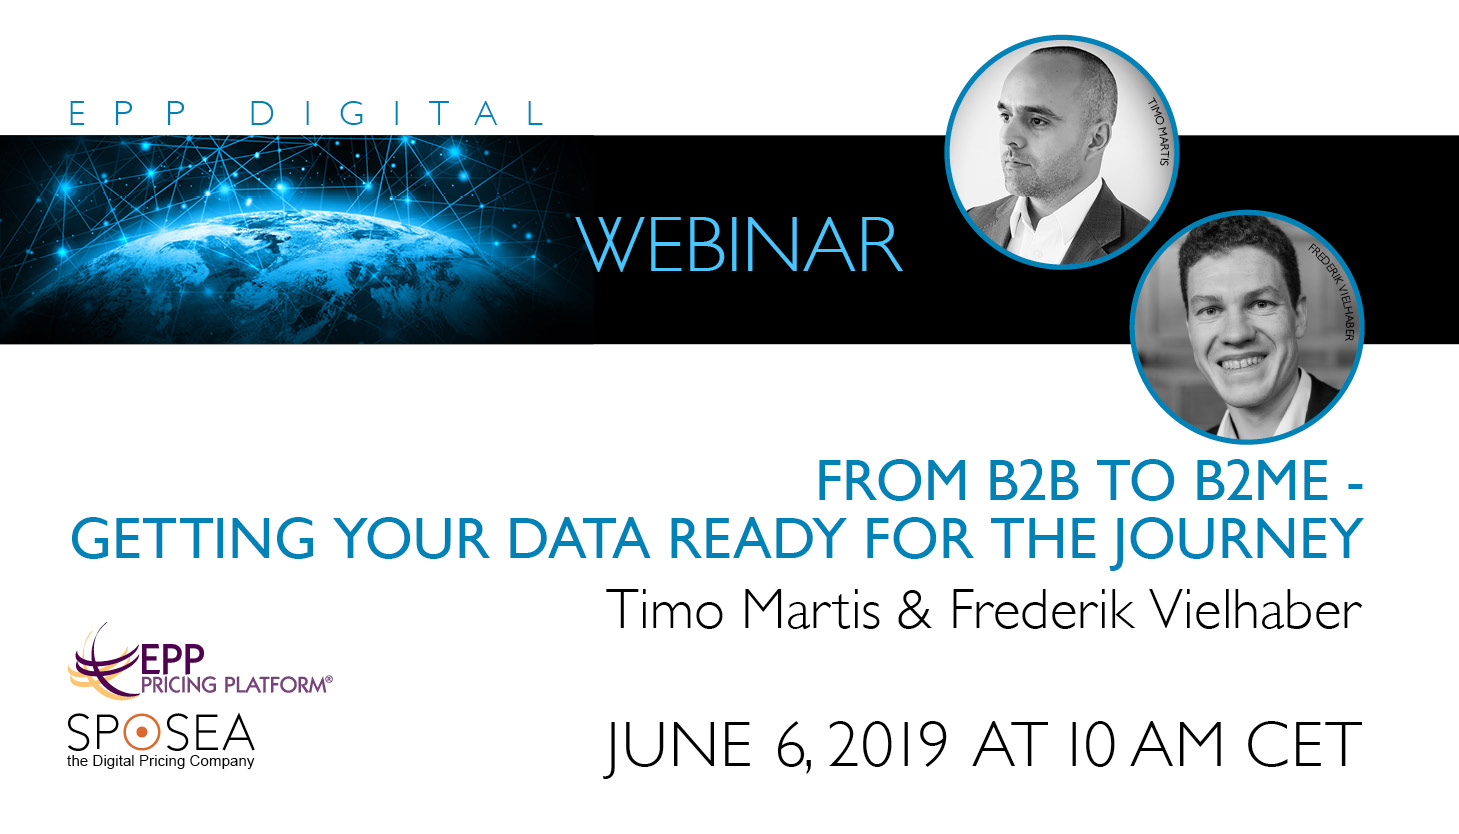 From B2B to B2ME - Getting your data ready for the journey